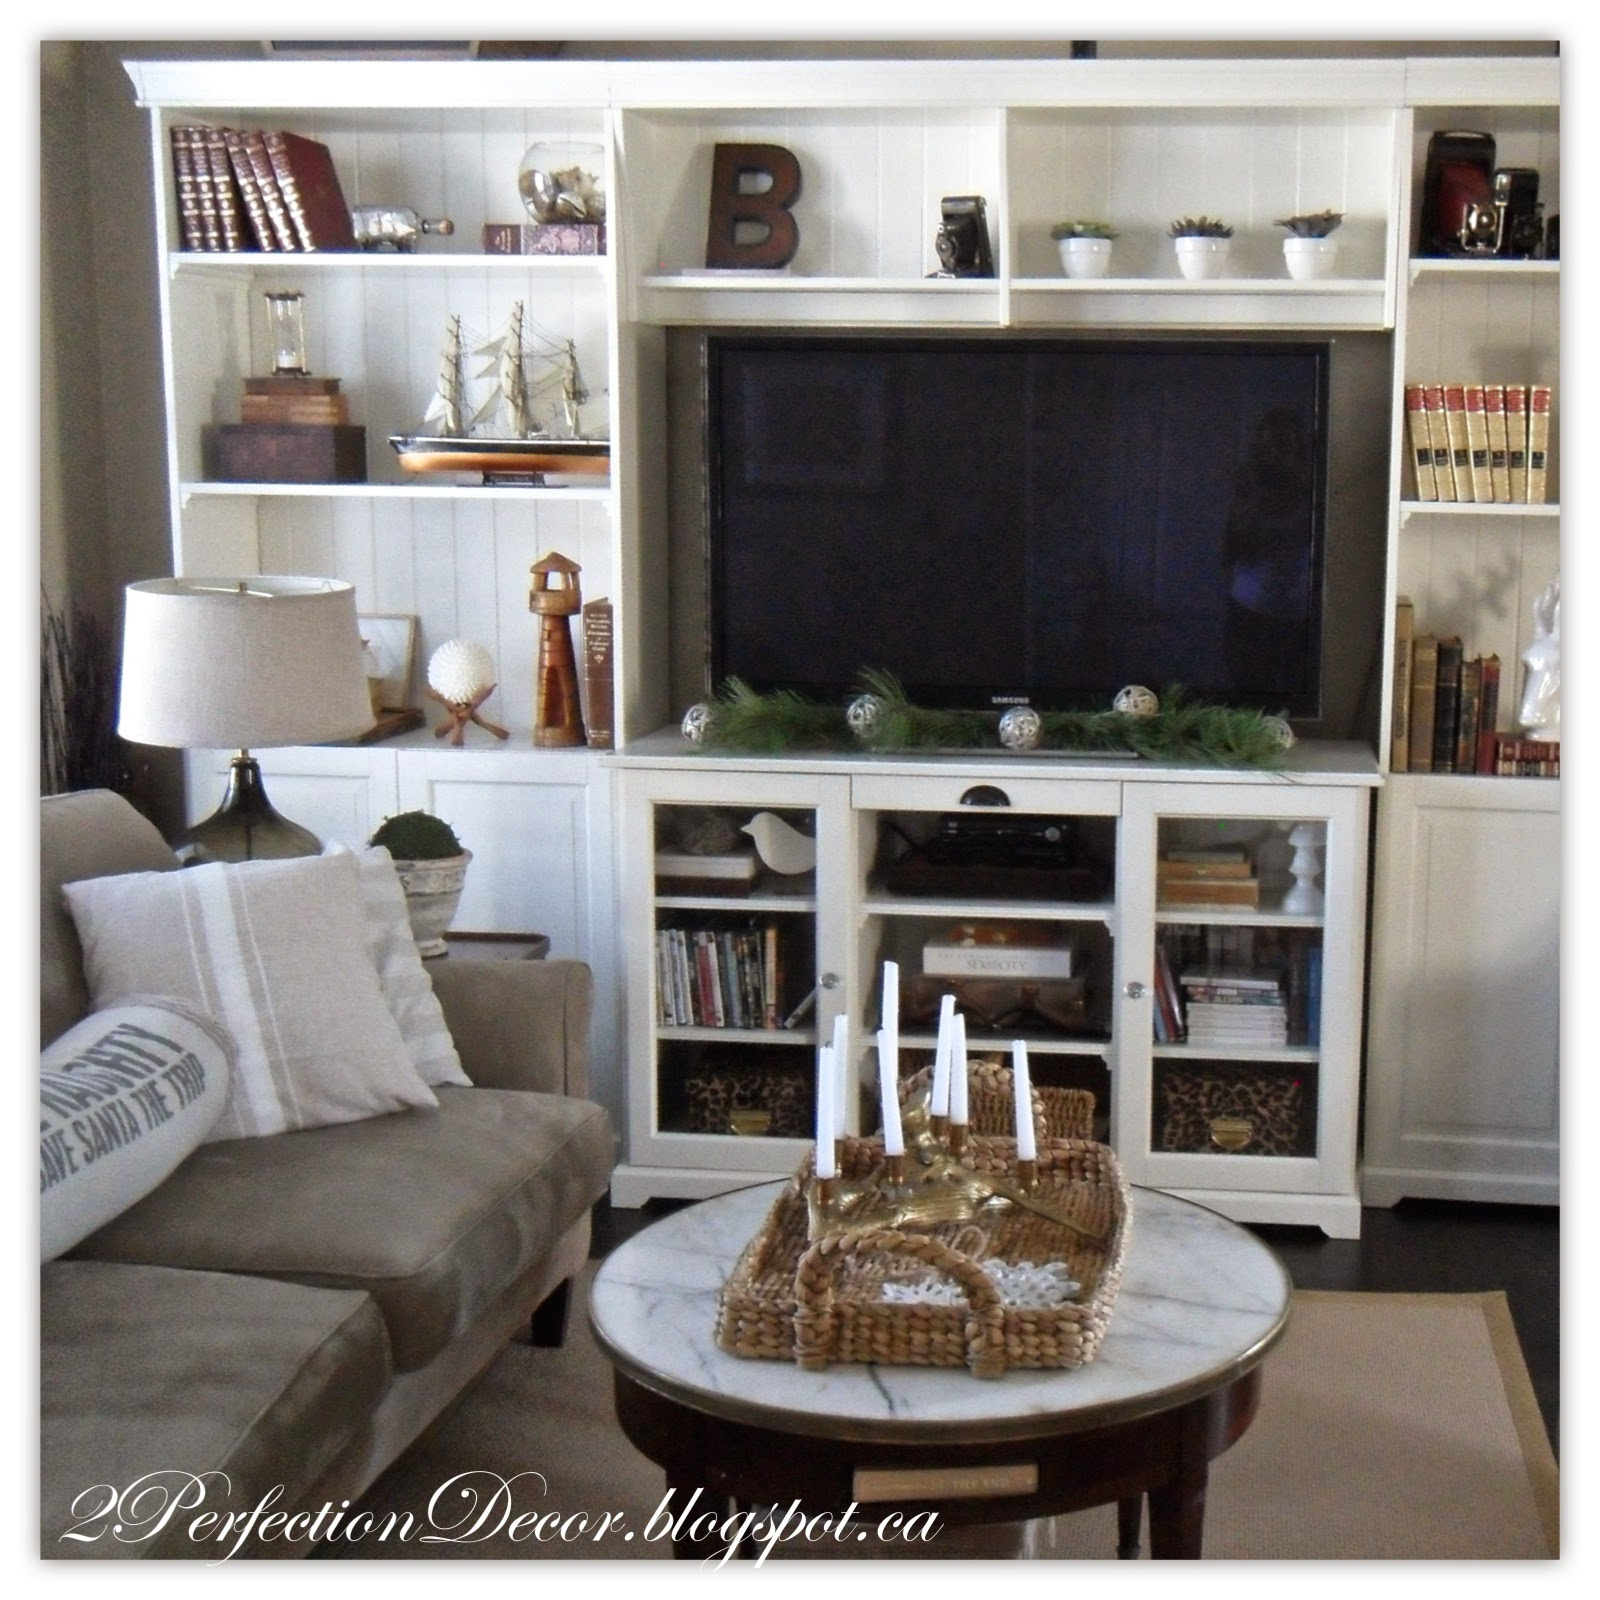 2Perfection Decor: Holiday decor in our Living and Dining room